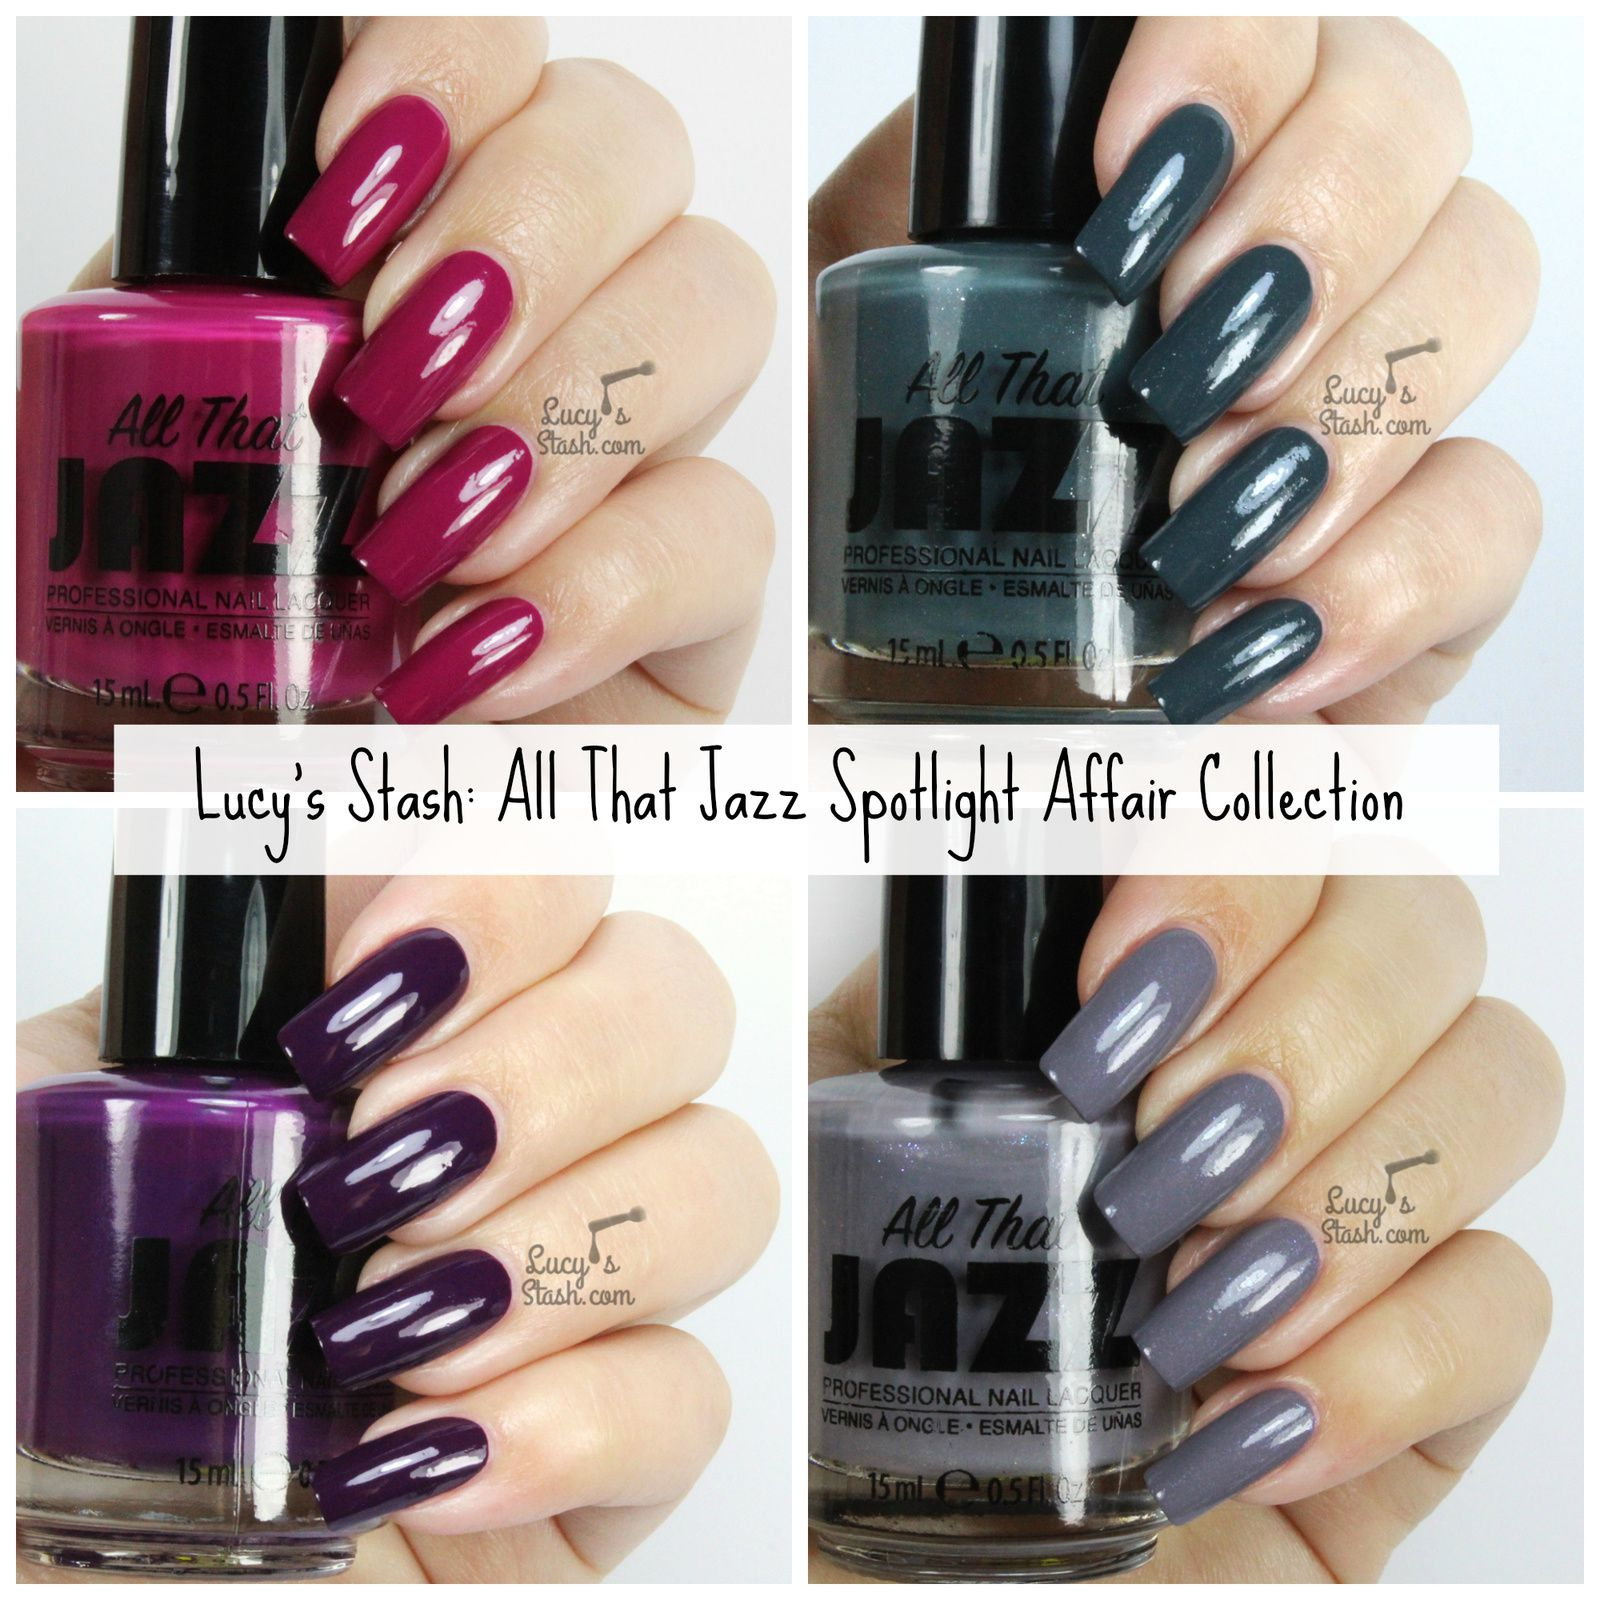 All That Jazz Spotlight Affair Collection - Review &amp&#x3B; Swatches